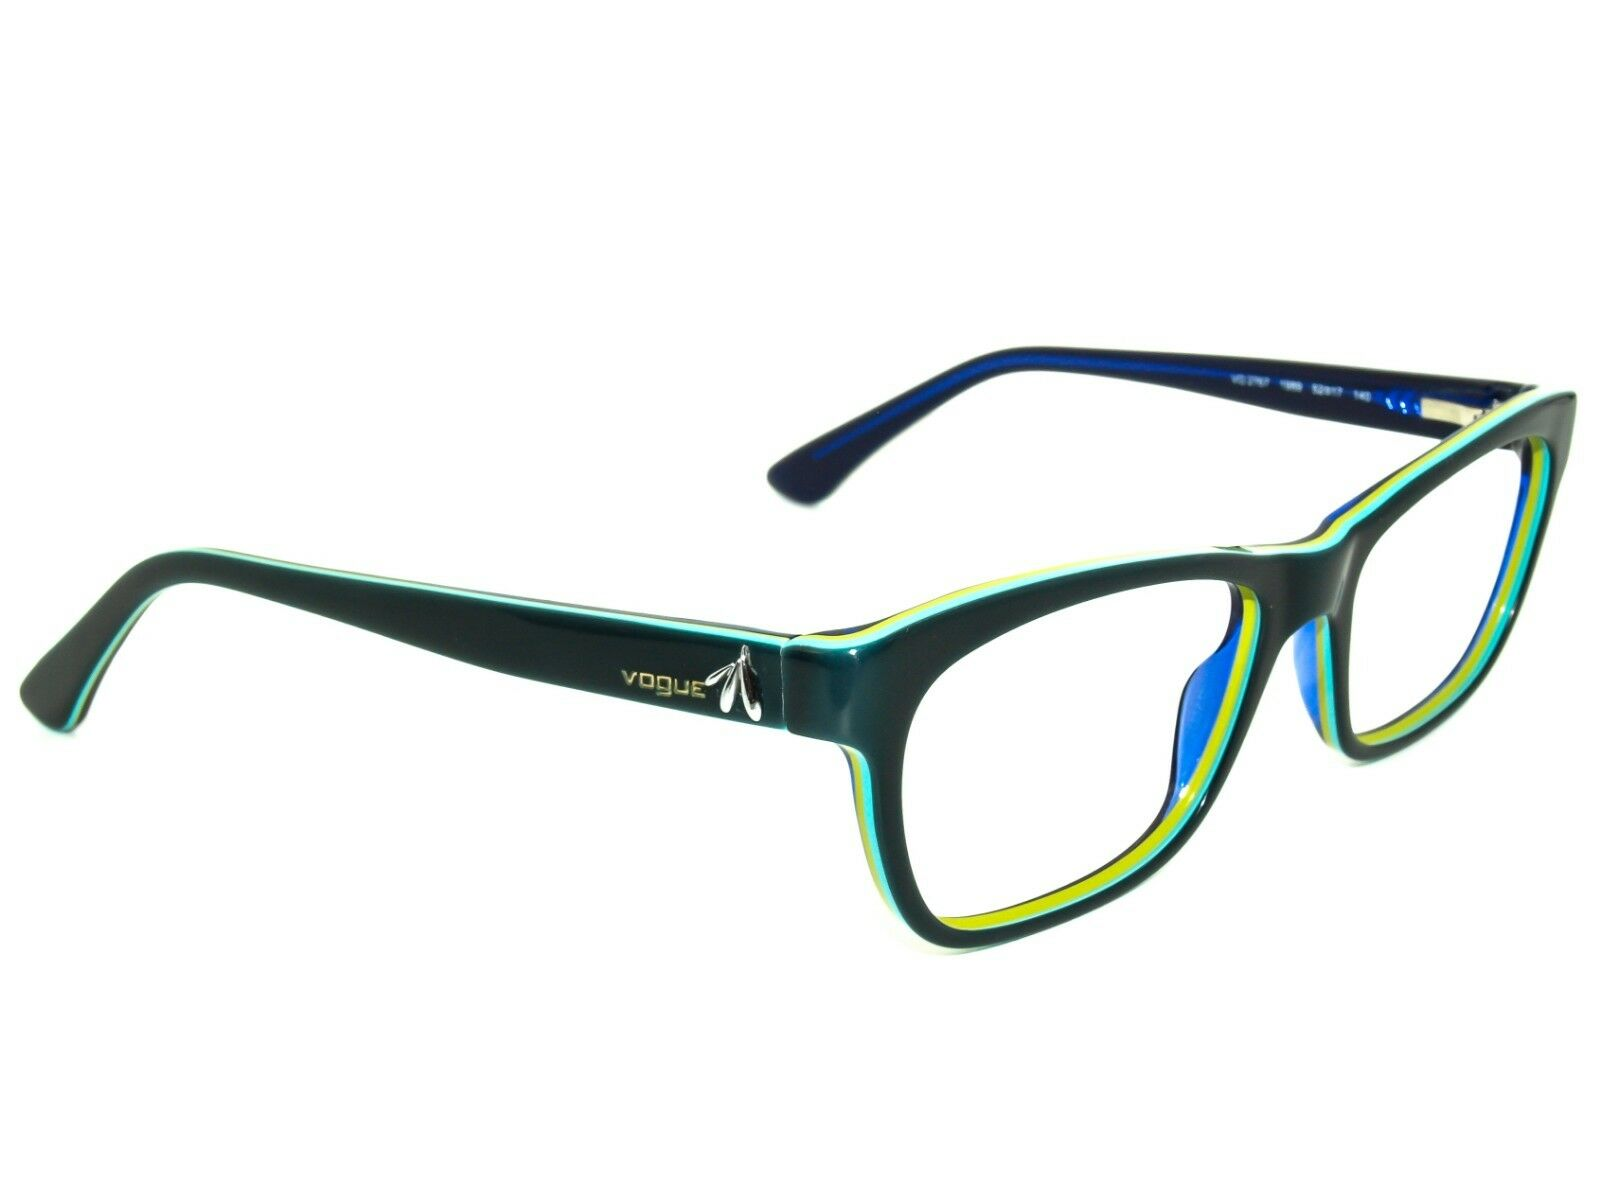 Vogue VO 2767 1989 Eyeglasses